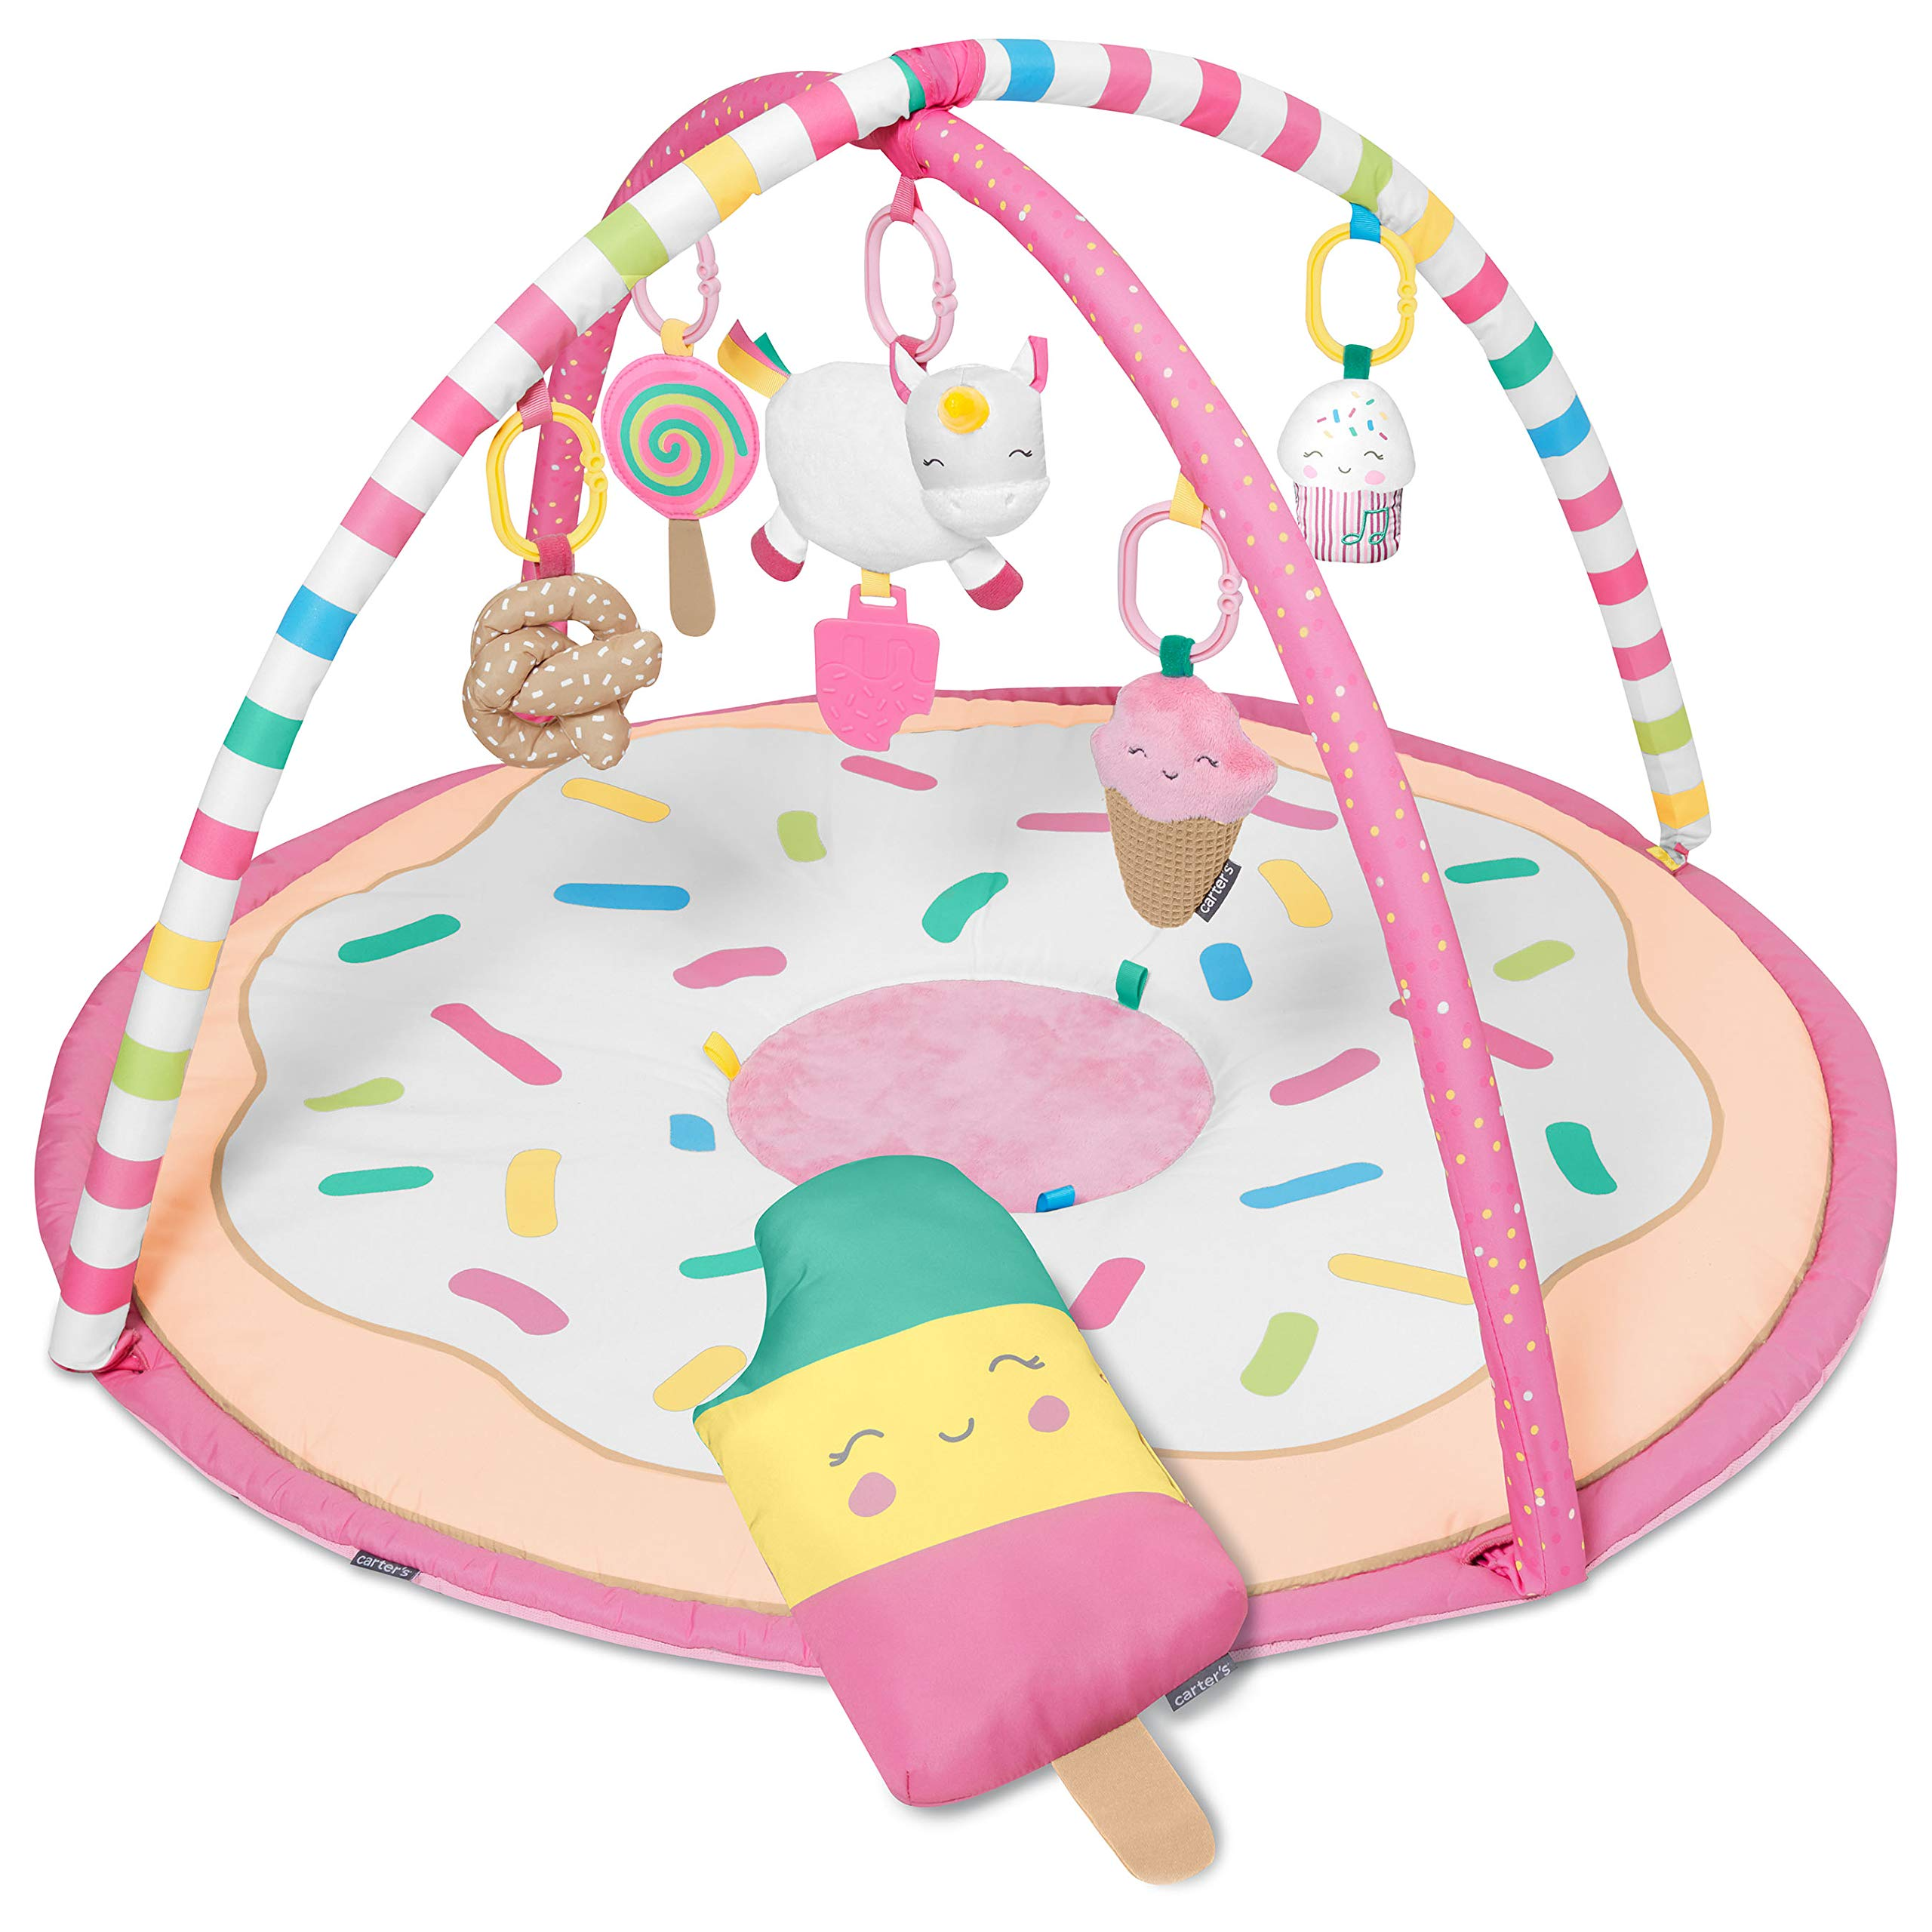 Carter's Sweet Surprise Baby Activity Gym, Pink by Carter's